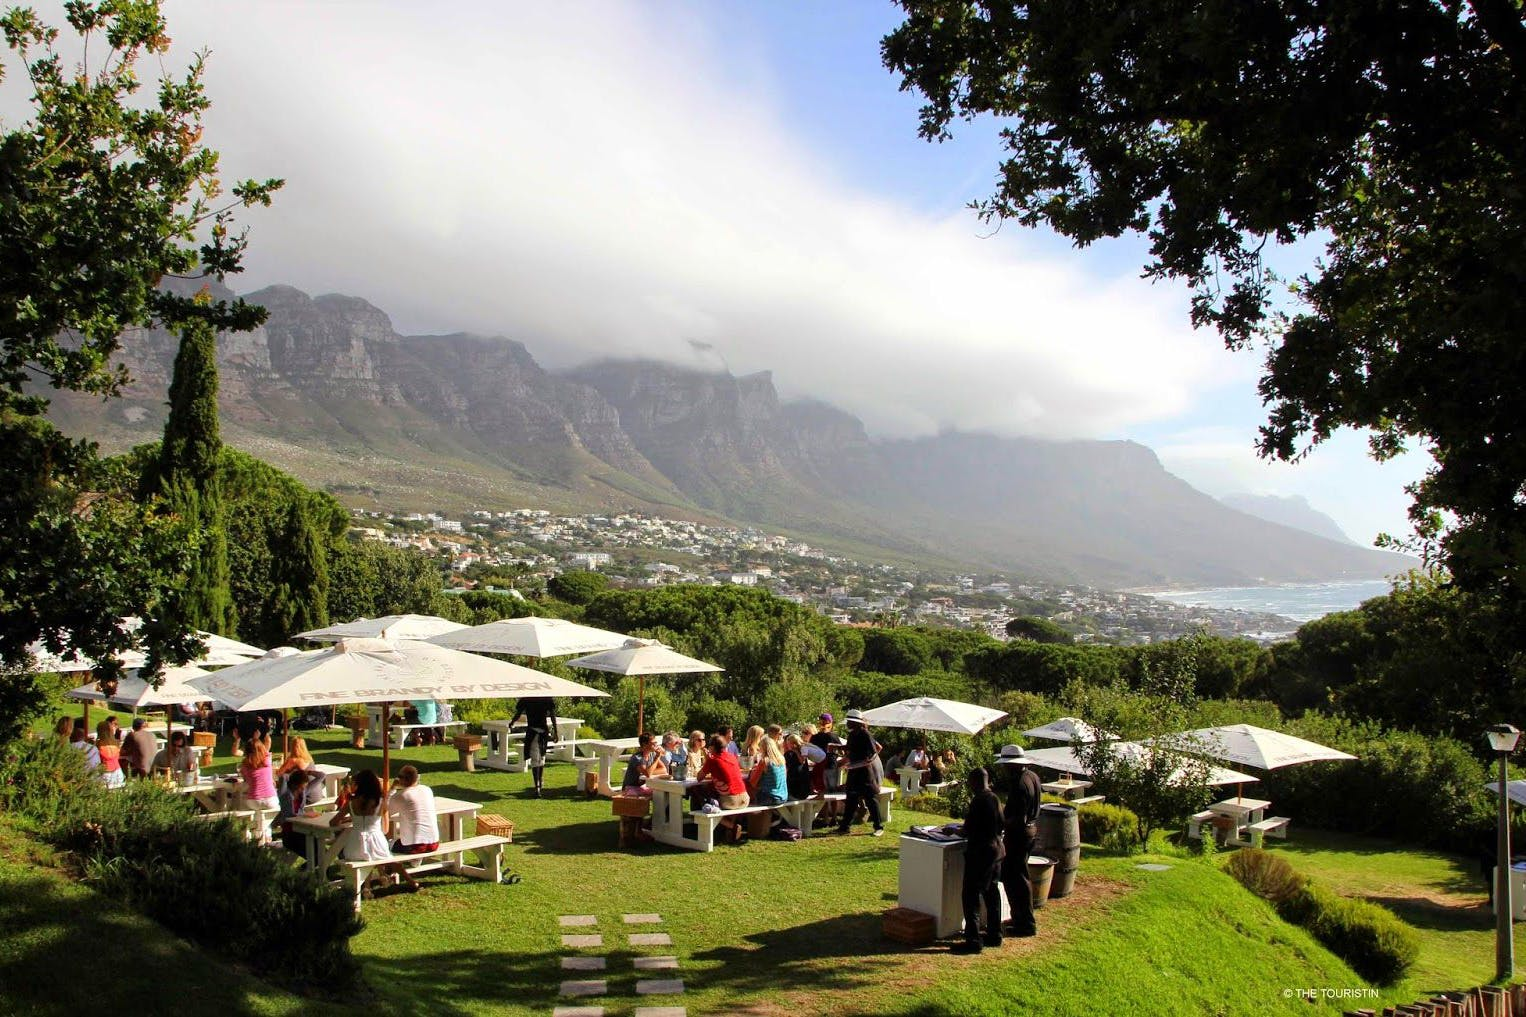 Salsify, The Roundhouse, Cape Town Best restaurants in Cape Town